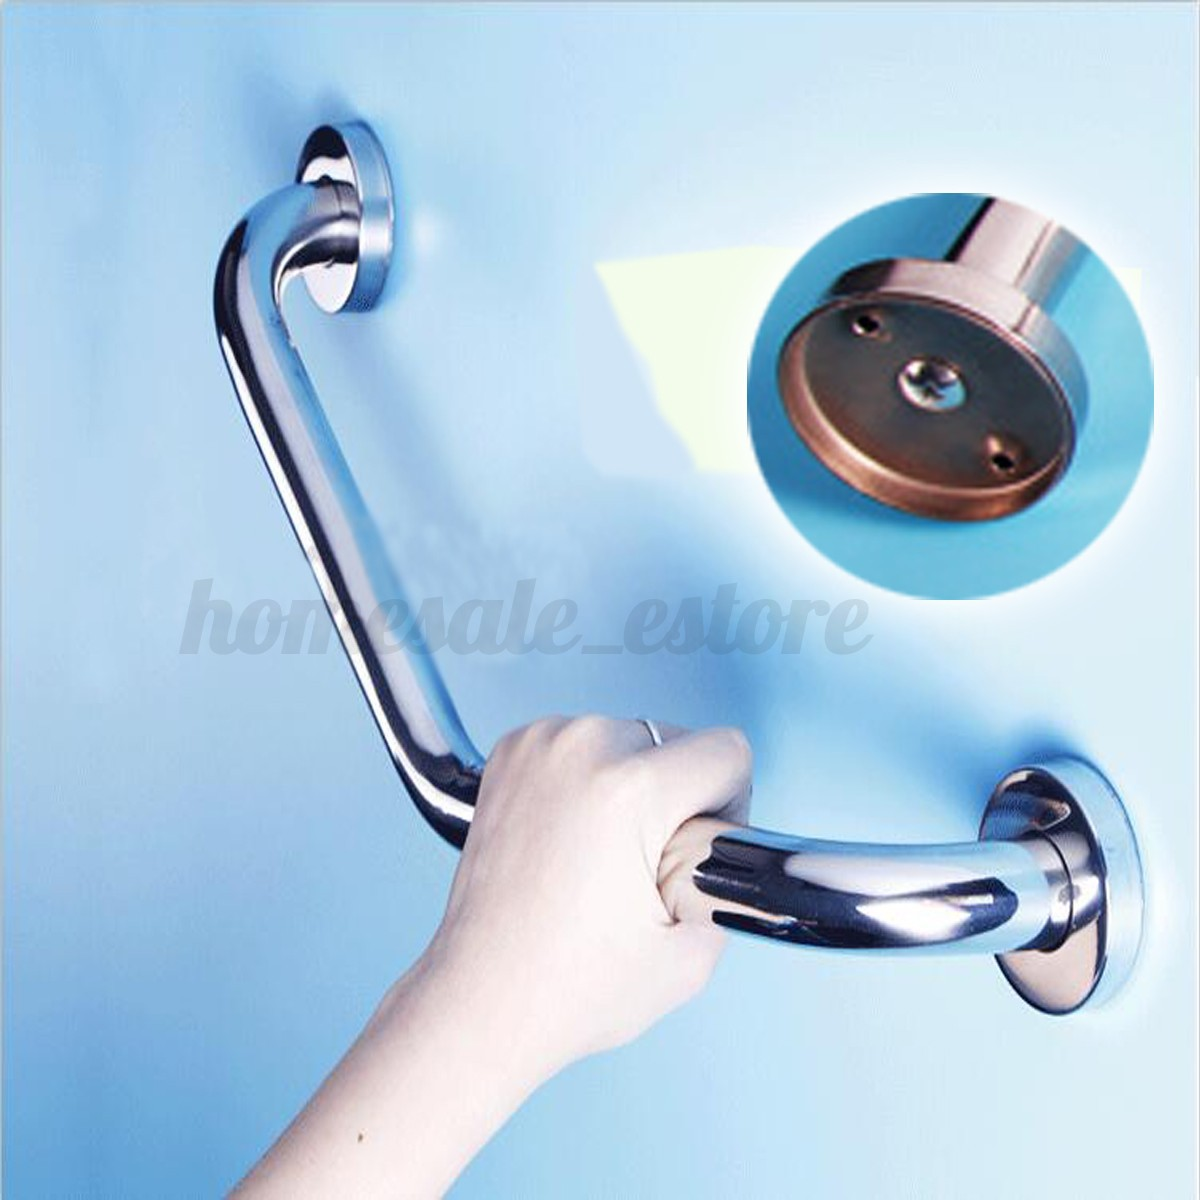 Bathroom Shower Knobs: New Stainless Steel Bathtub Arm Safety Handle Grip Bath